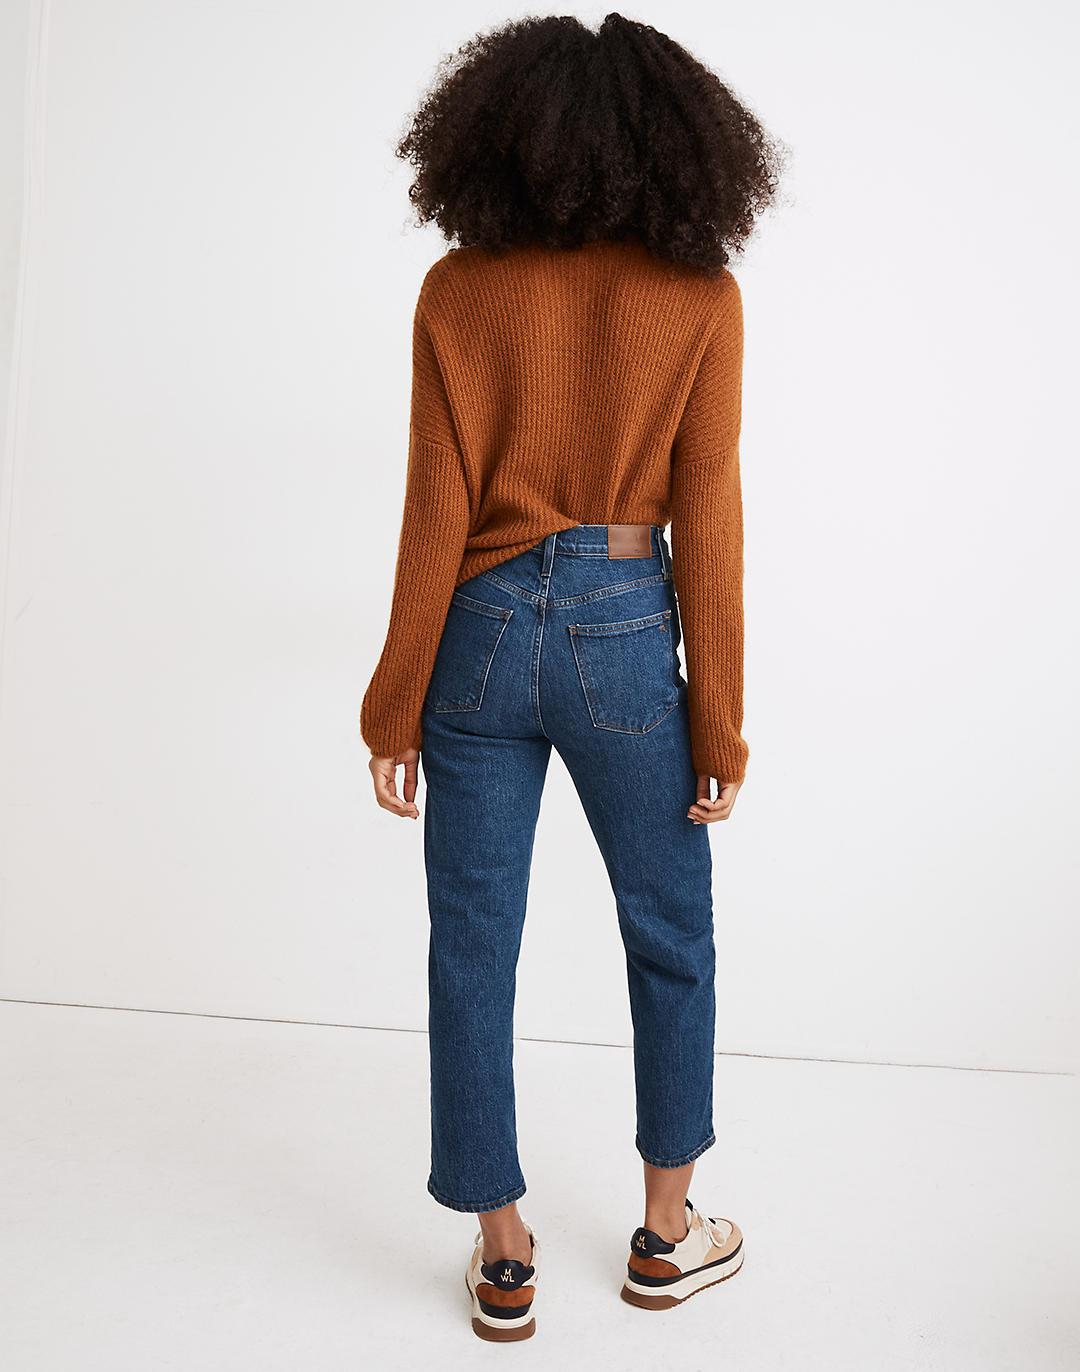 The Petite Perfect Vintage Straight Crop Jean in Edendale Wash